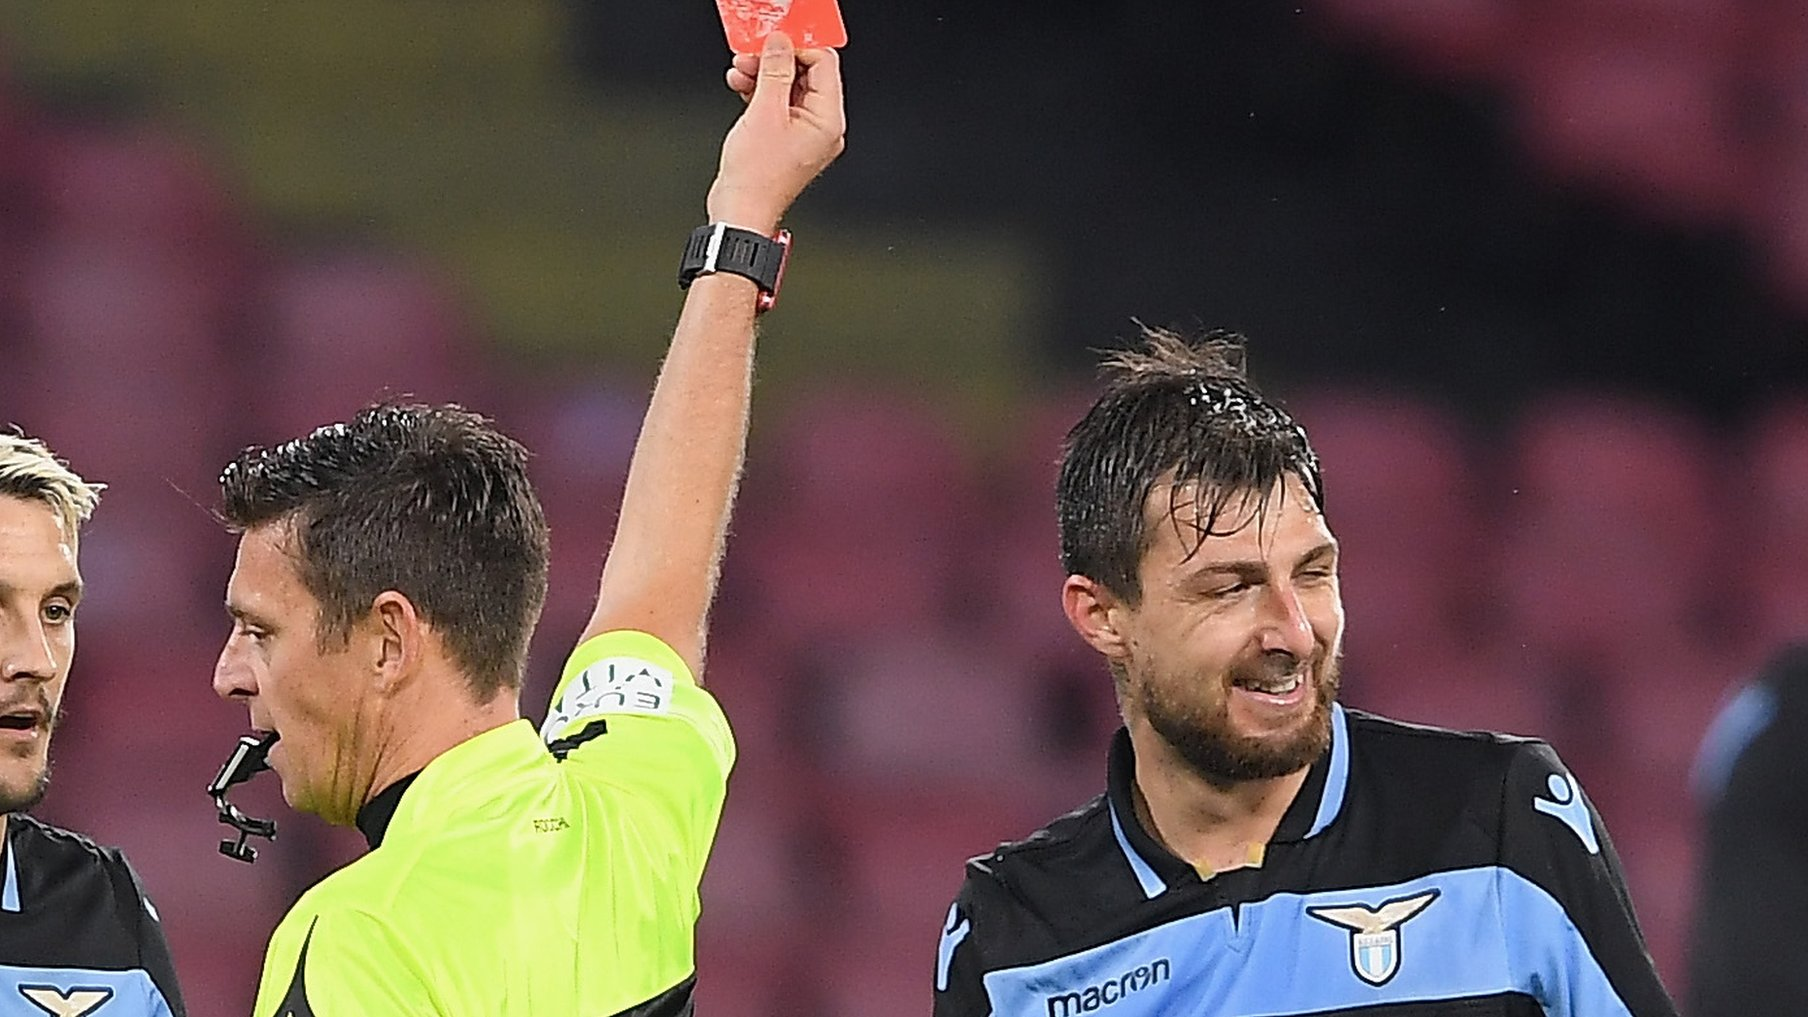 Francesco Acerbi: 149 and out - Lazio defender's Serie A record hopes dashed by red card